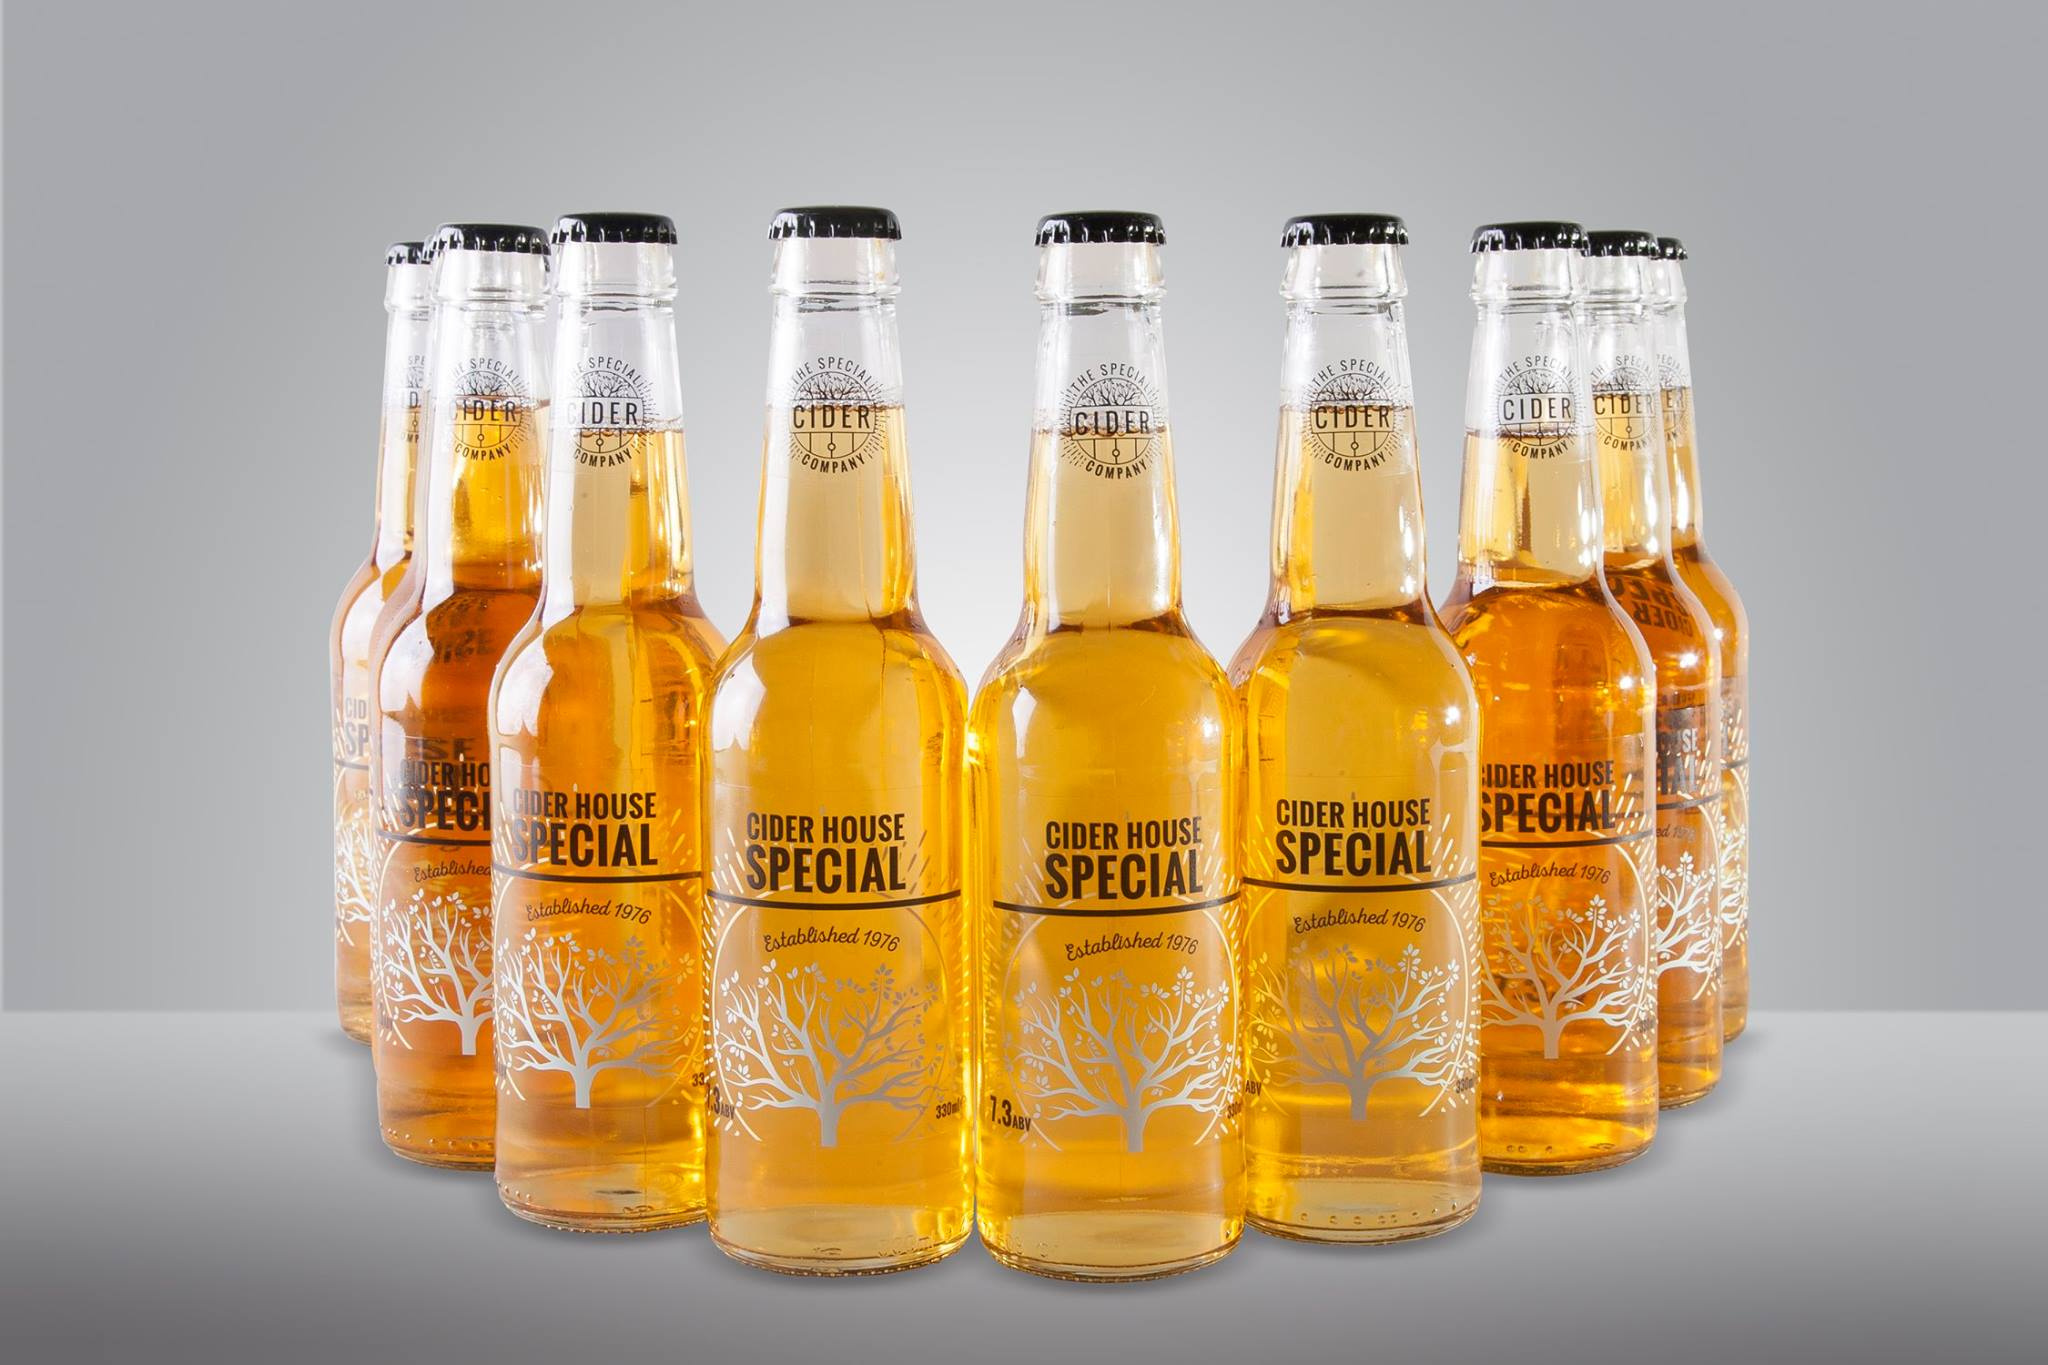 Discover The Special Cider Company at this year's Ludlow Spring Festival